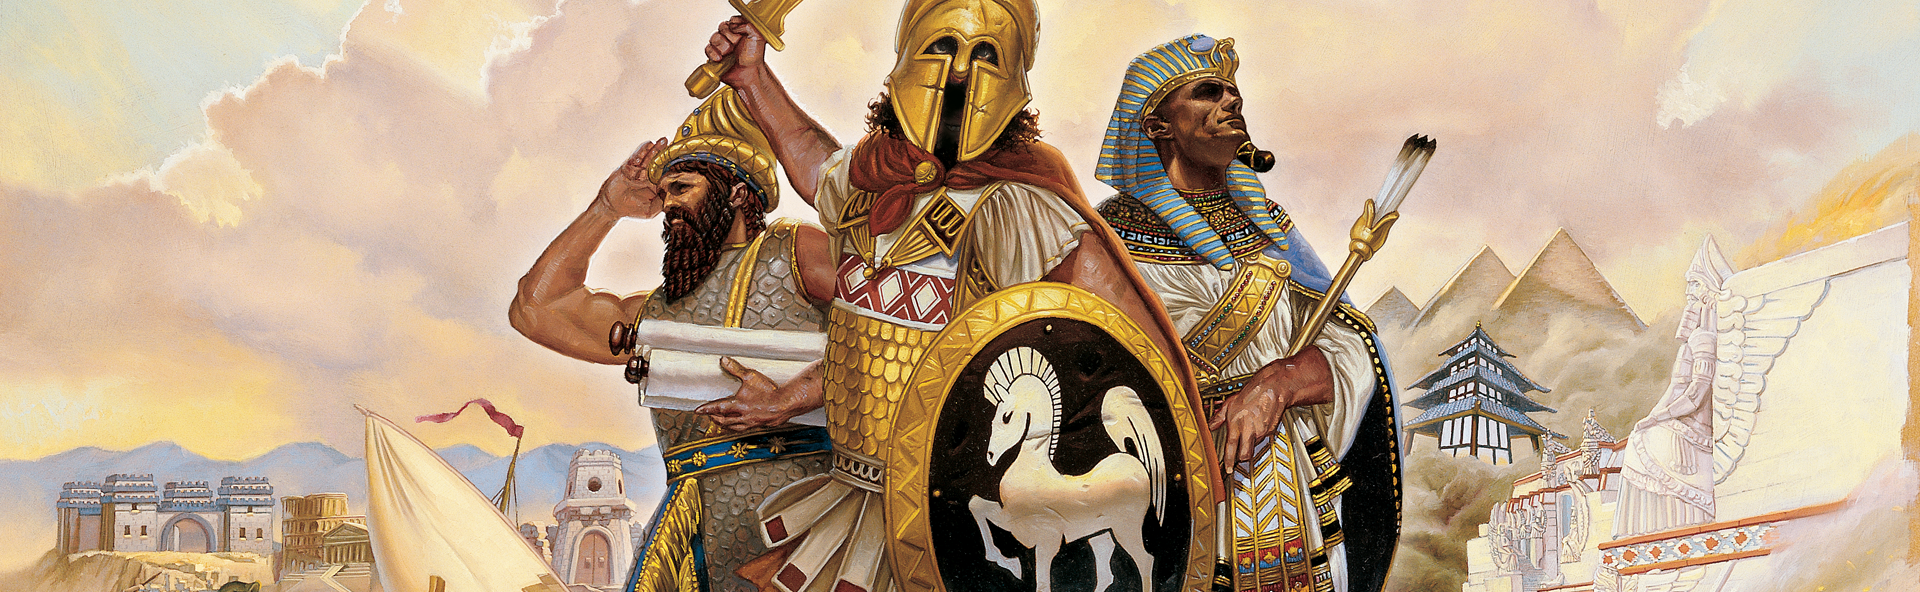 Age of Empires v1.0c and Rise of Rome v1.0a Patch - EN/FR/DE